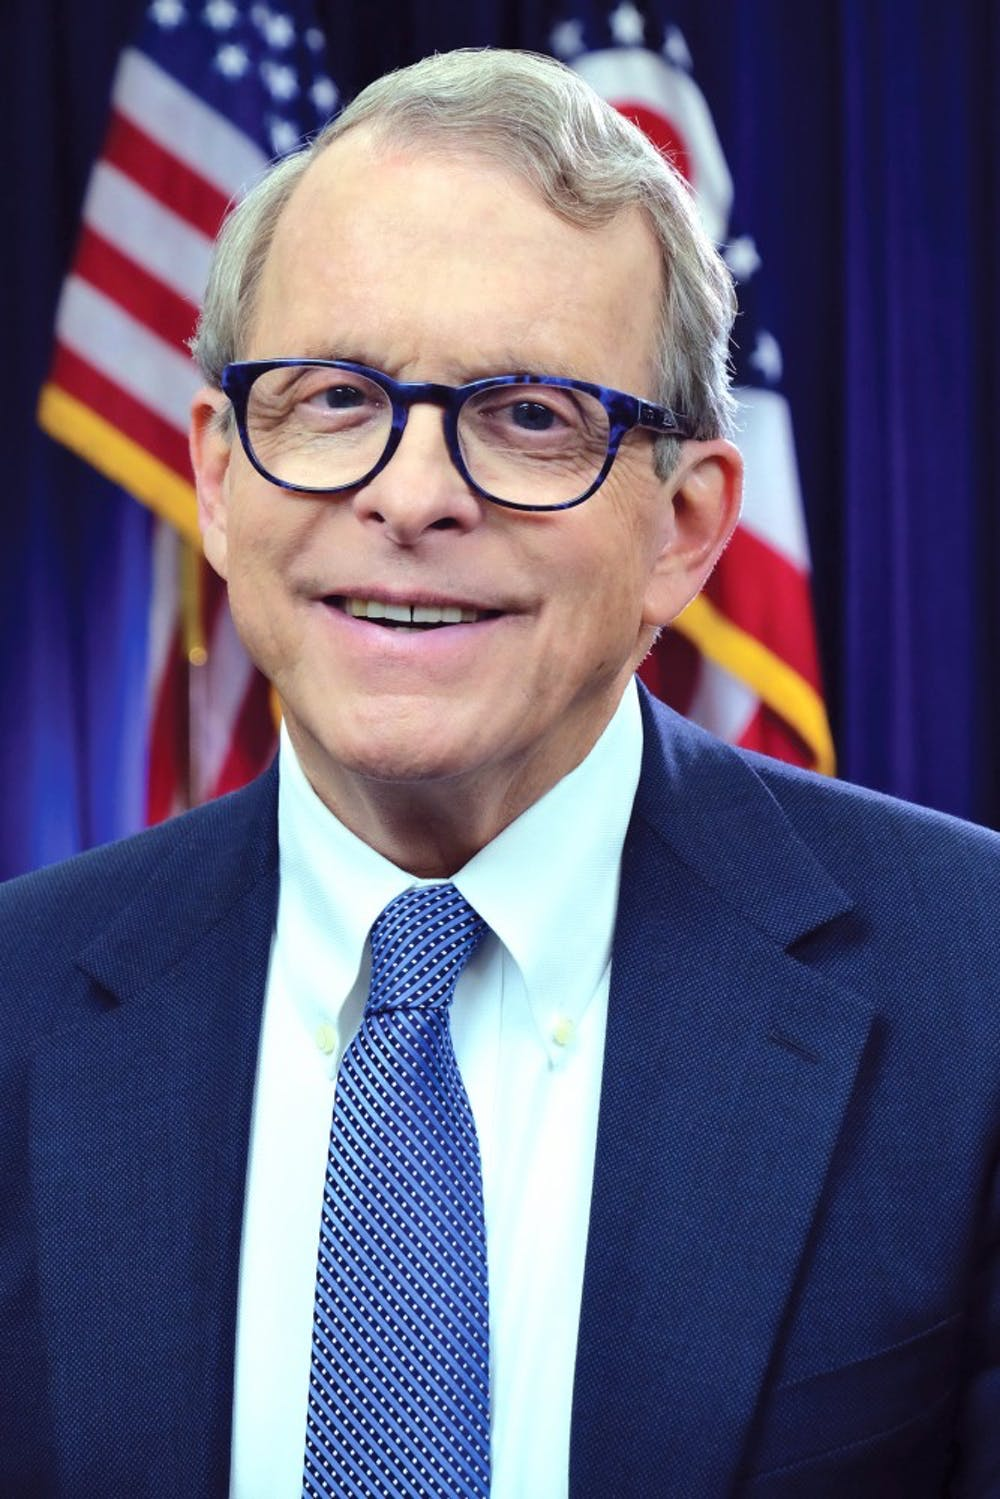 What to expect from Gov. Mike Dewine's first term